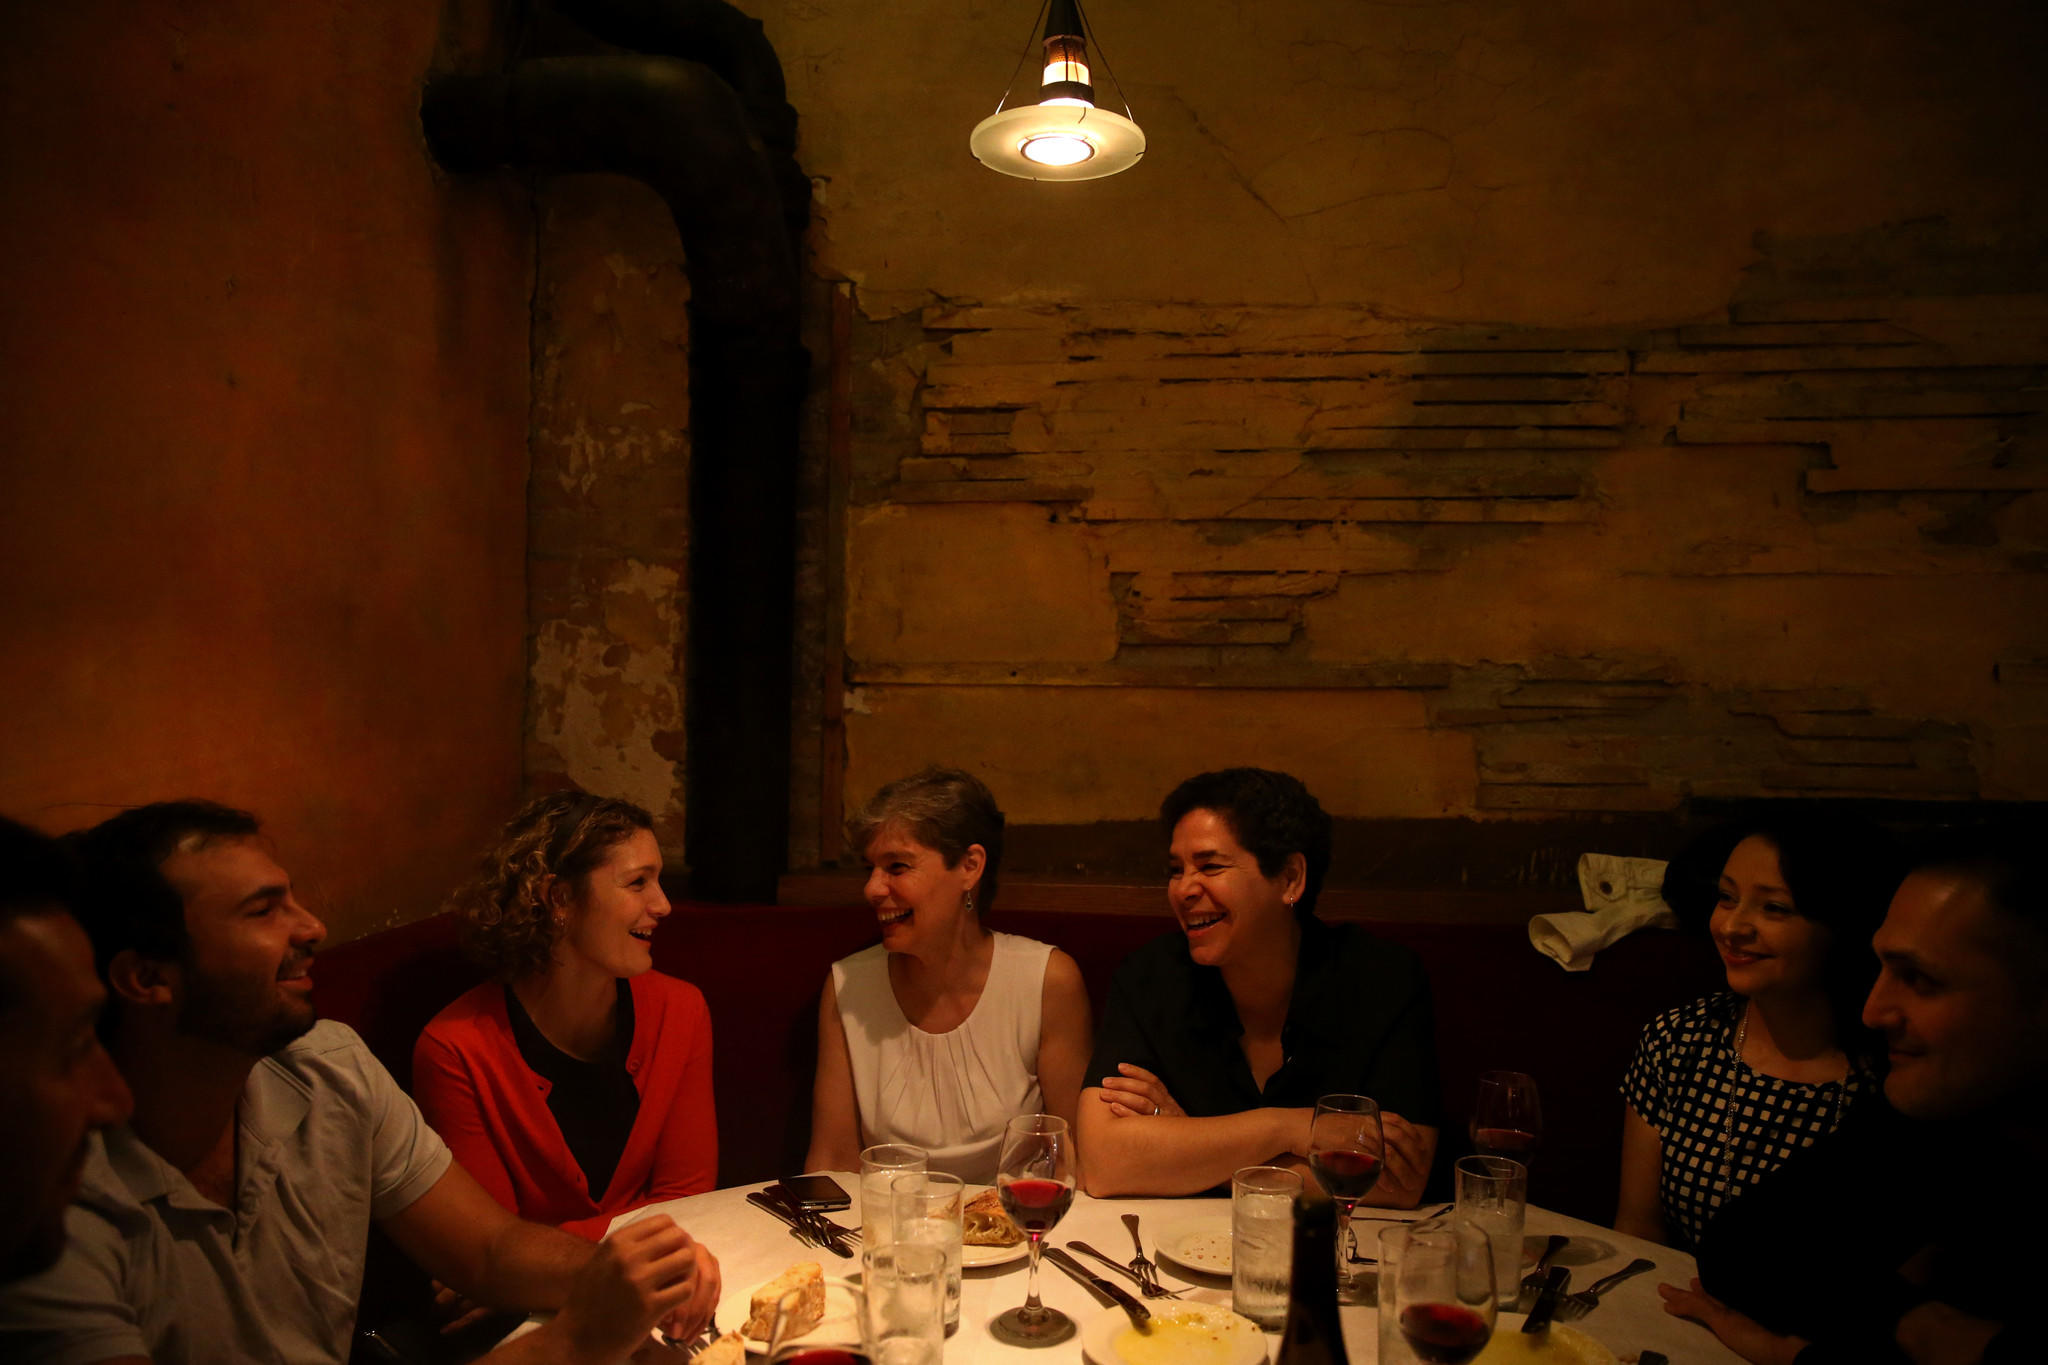 A group of friends enjoy a night out at Scoozi.